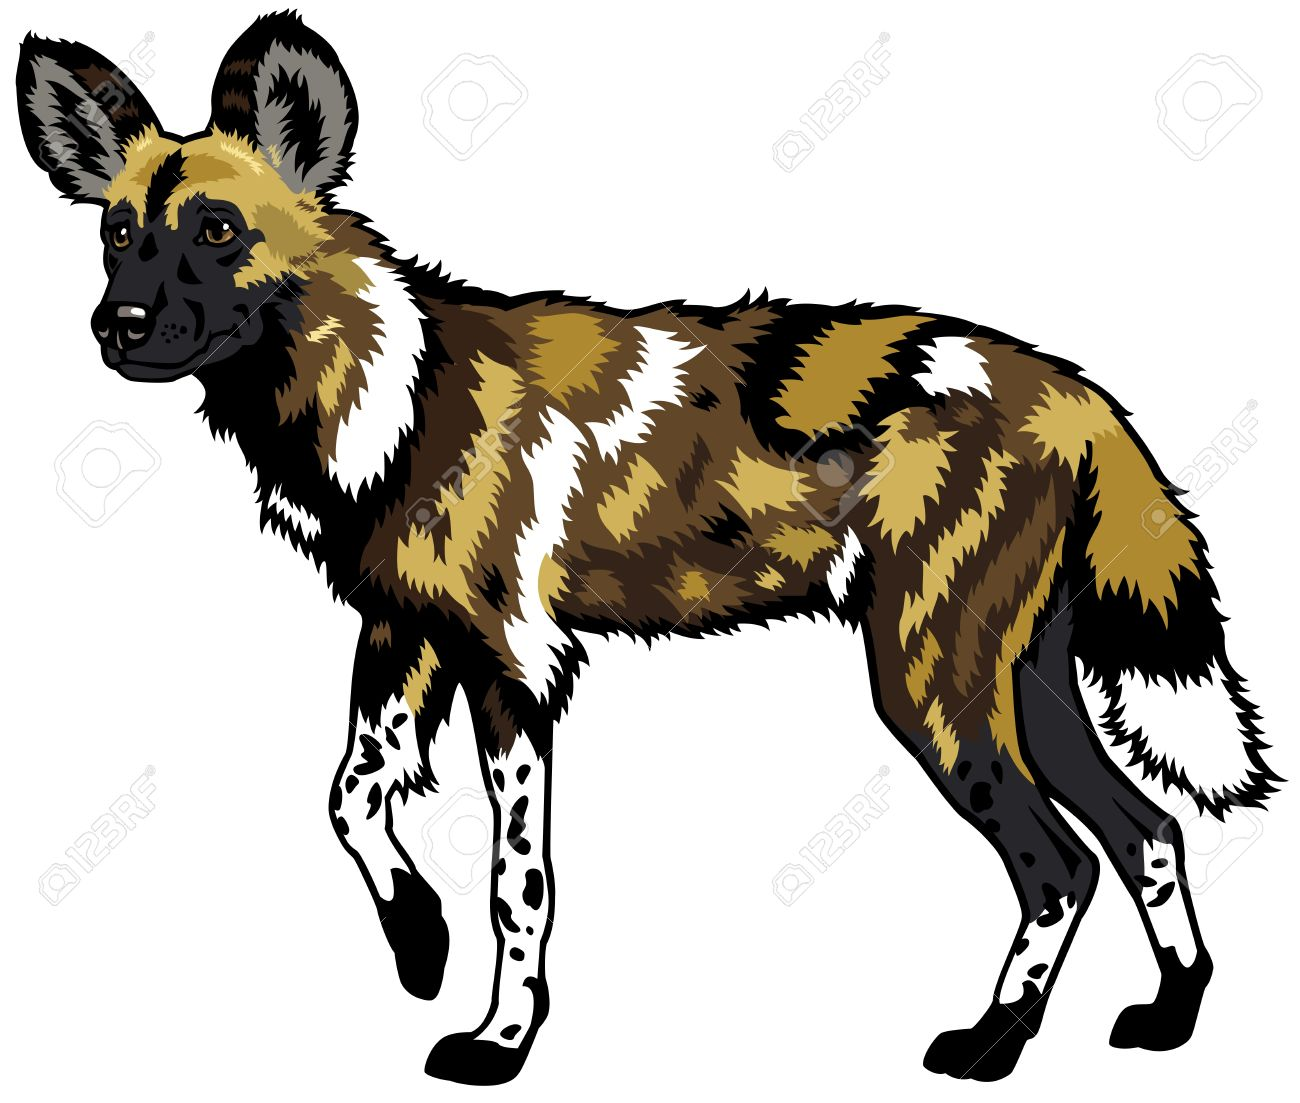 Wild Dog clipart #4, Download drawings